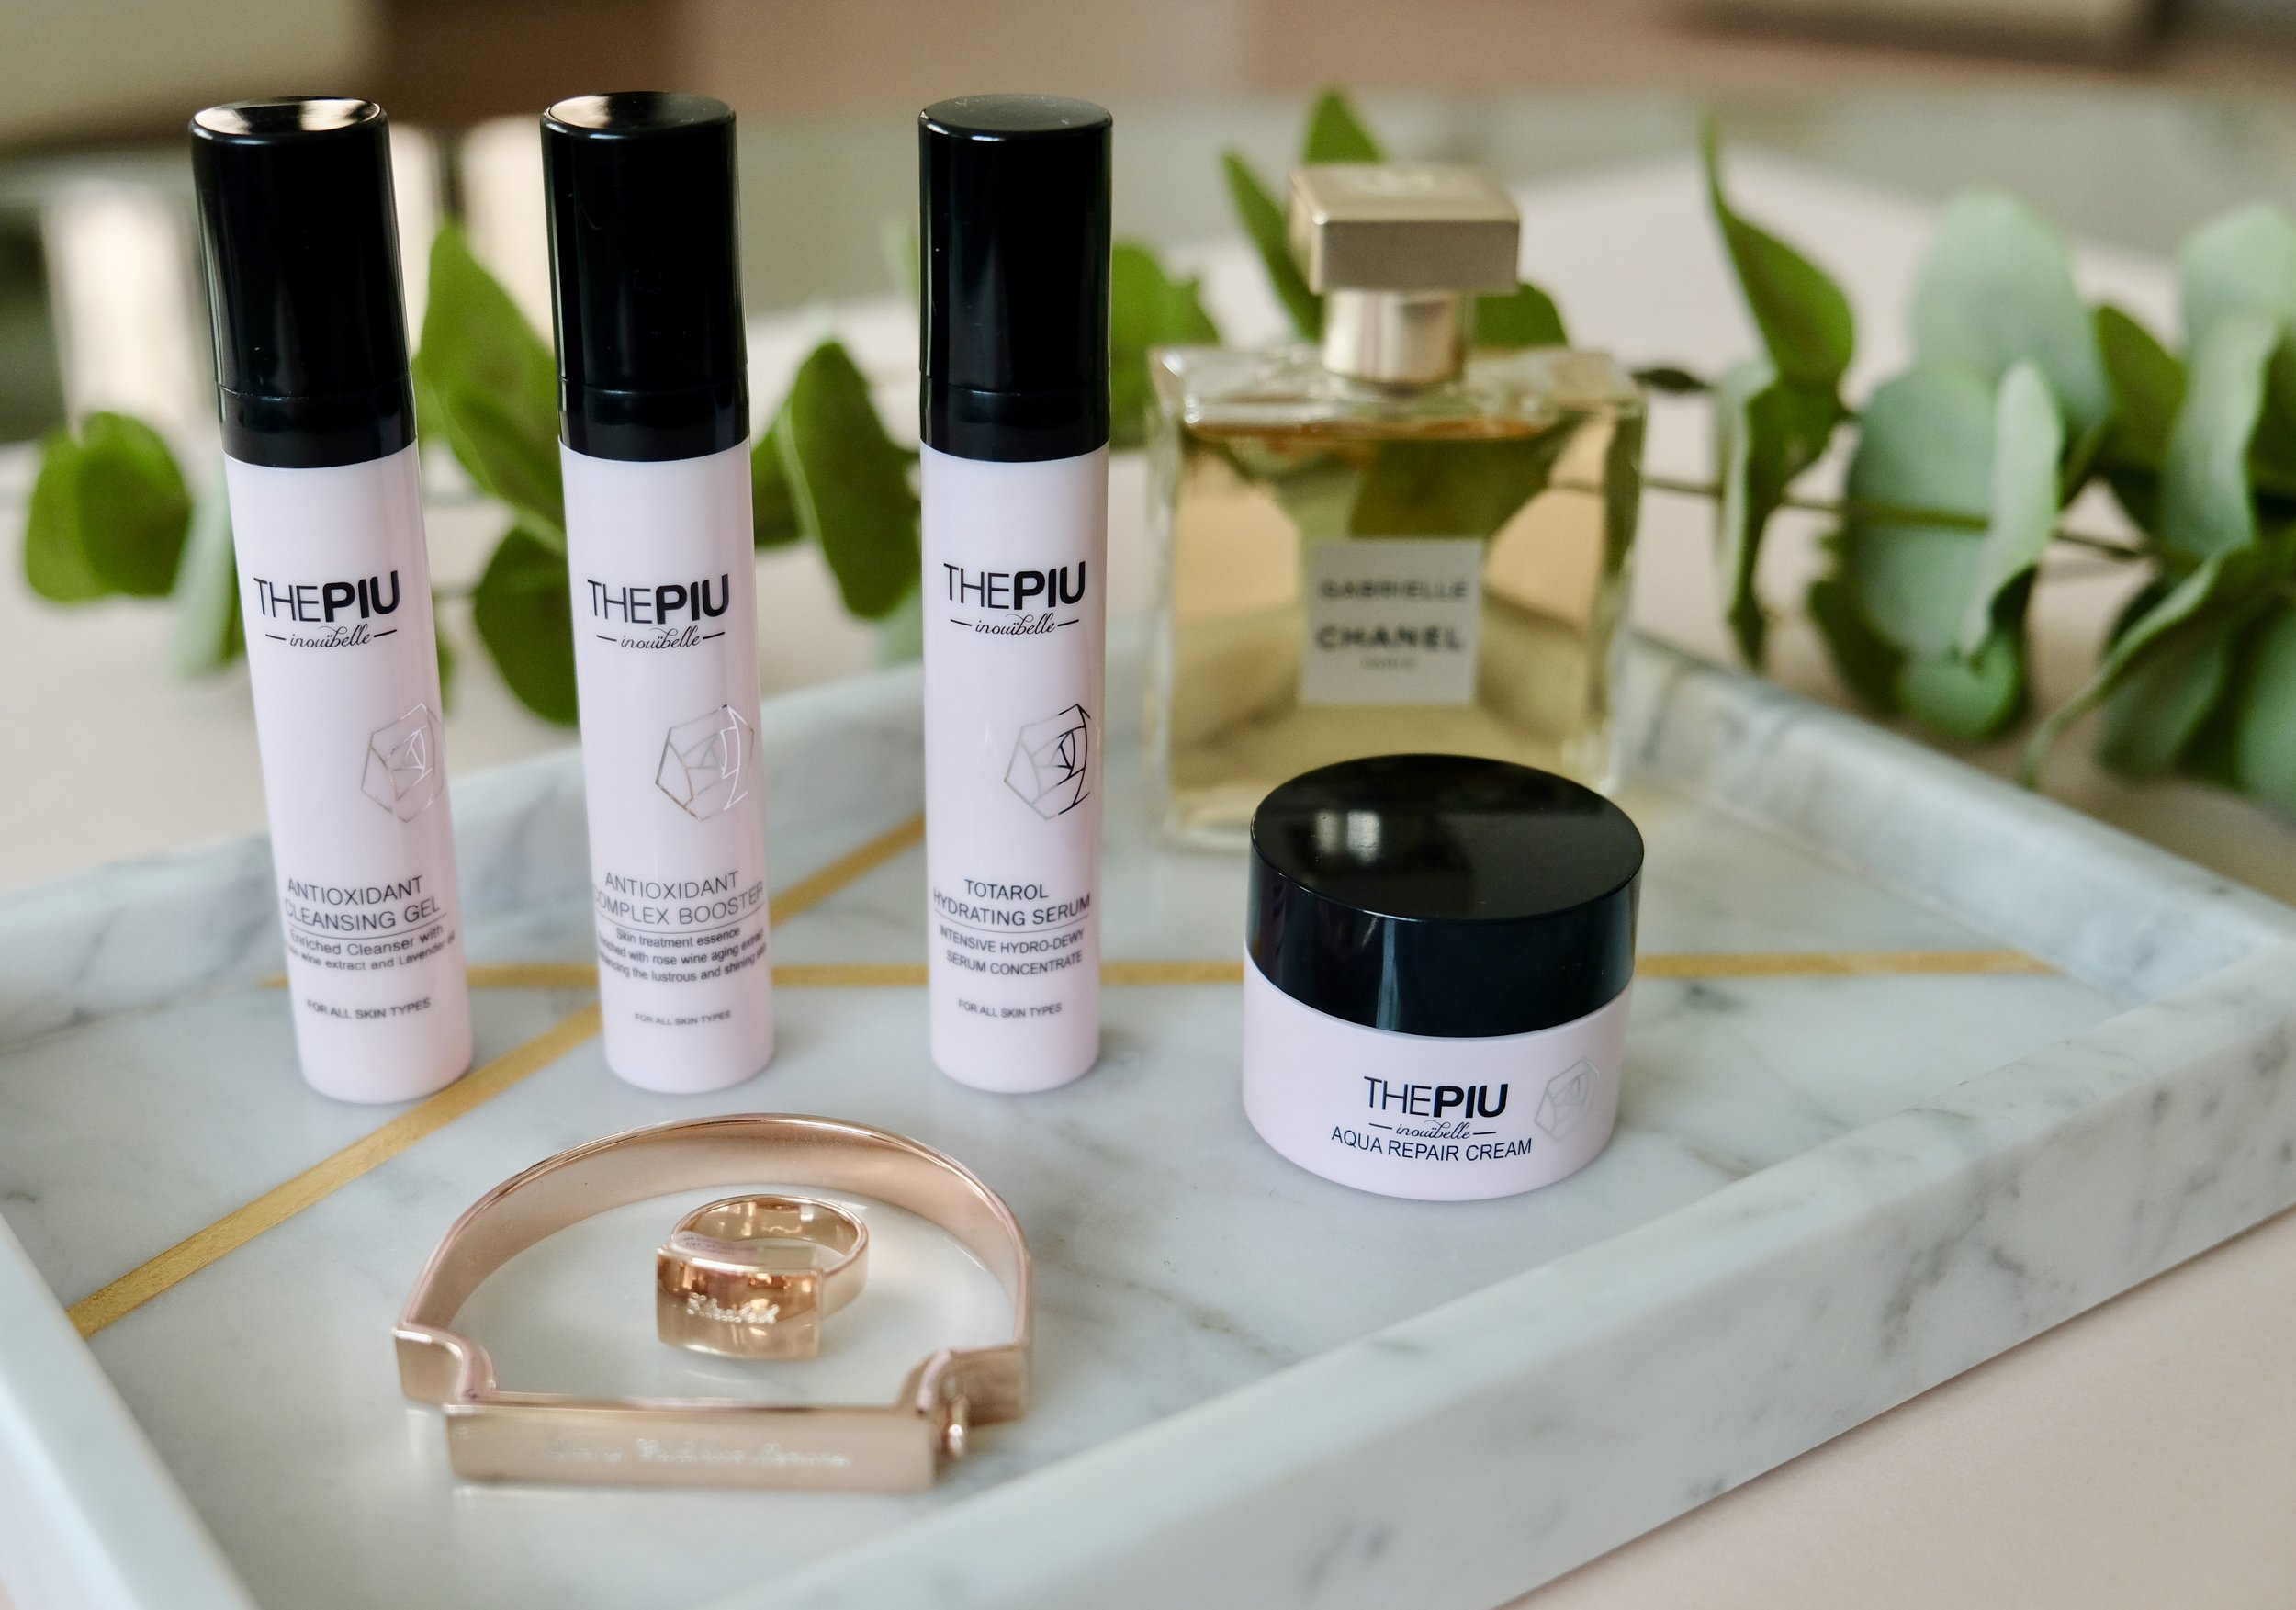 The PIU    - an  antioxidant-based facial care line, devoted to using the highest quality natural ingredients. Every product is alcohol, soap, and sulfate free; made using the finest, most beneficial plants and herbs.